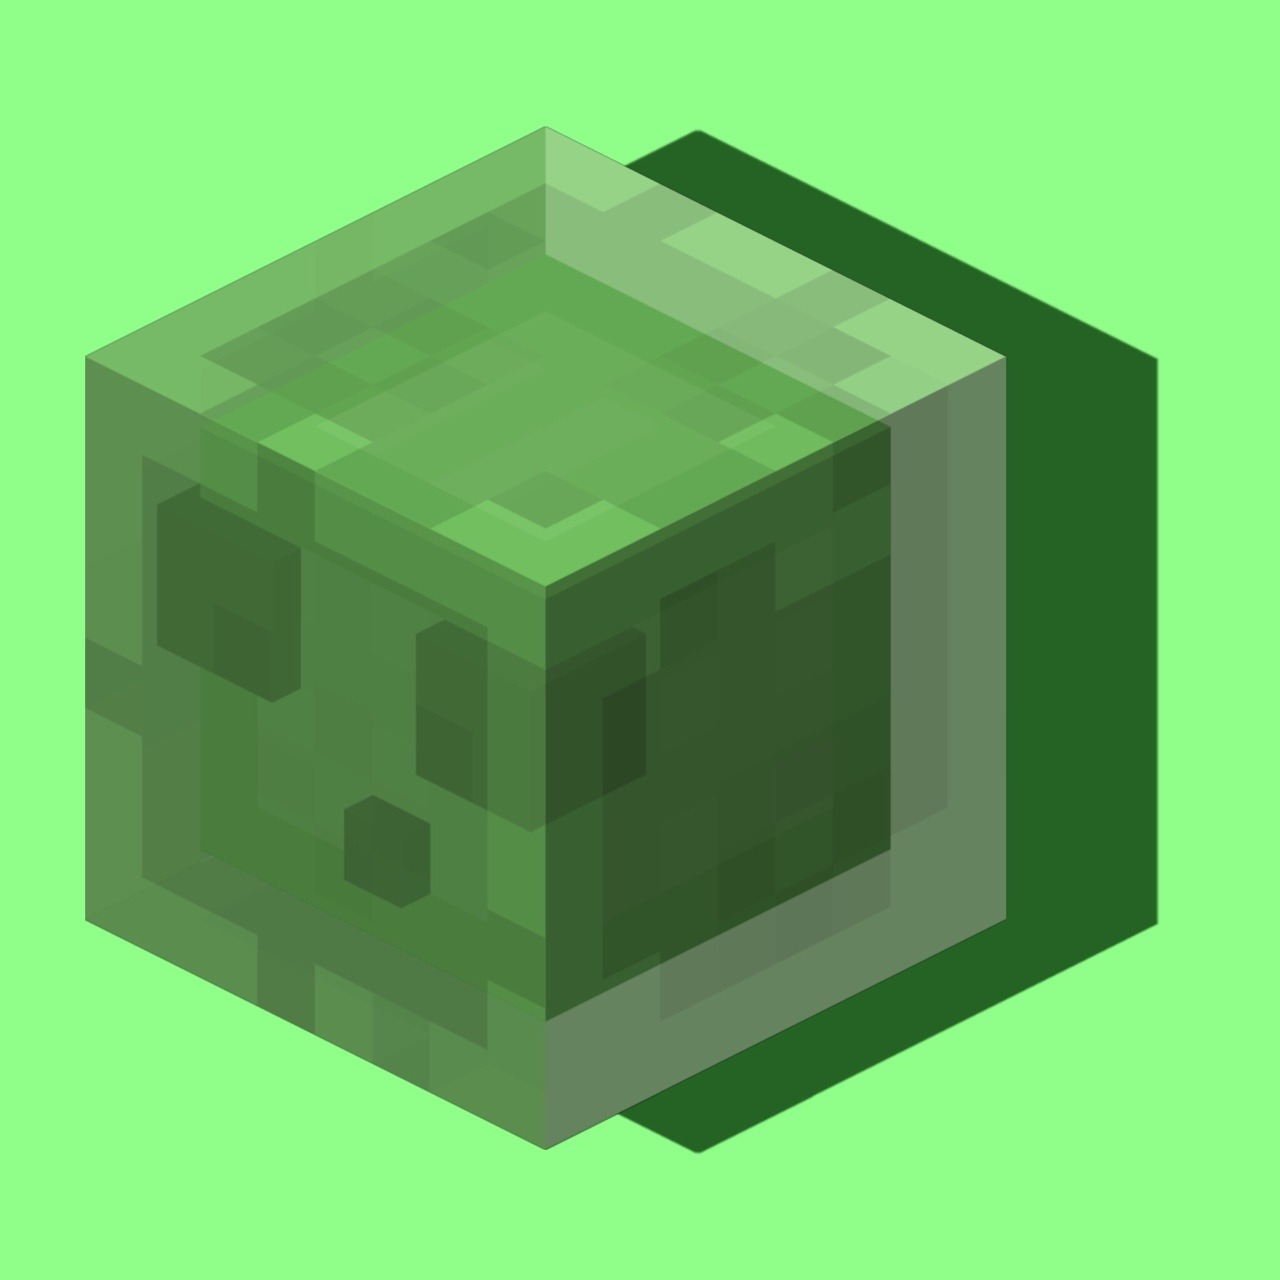 minecraft icons | Tumblr